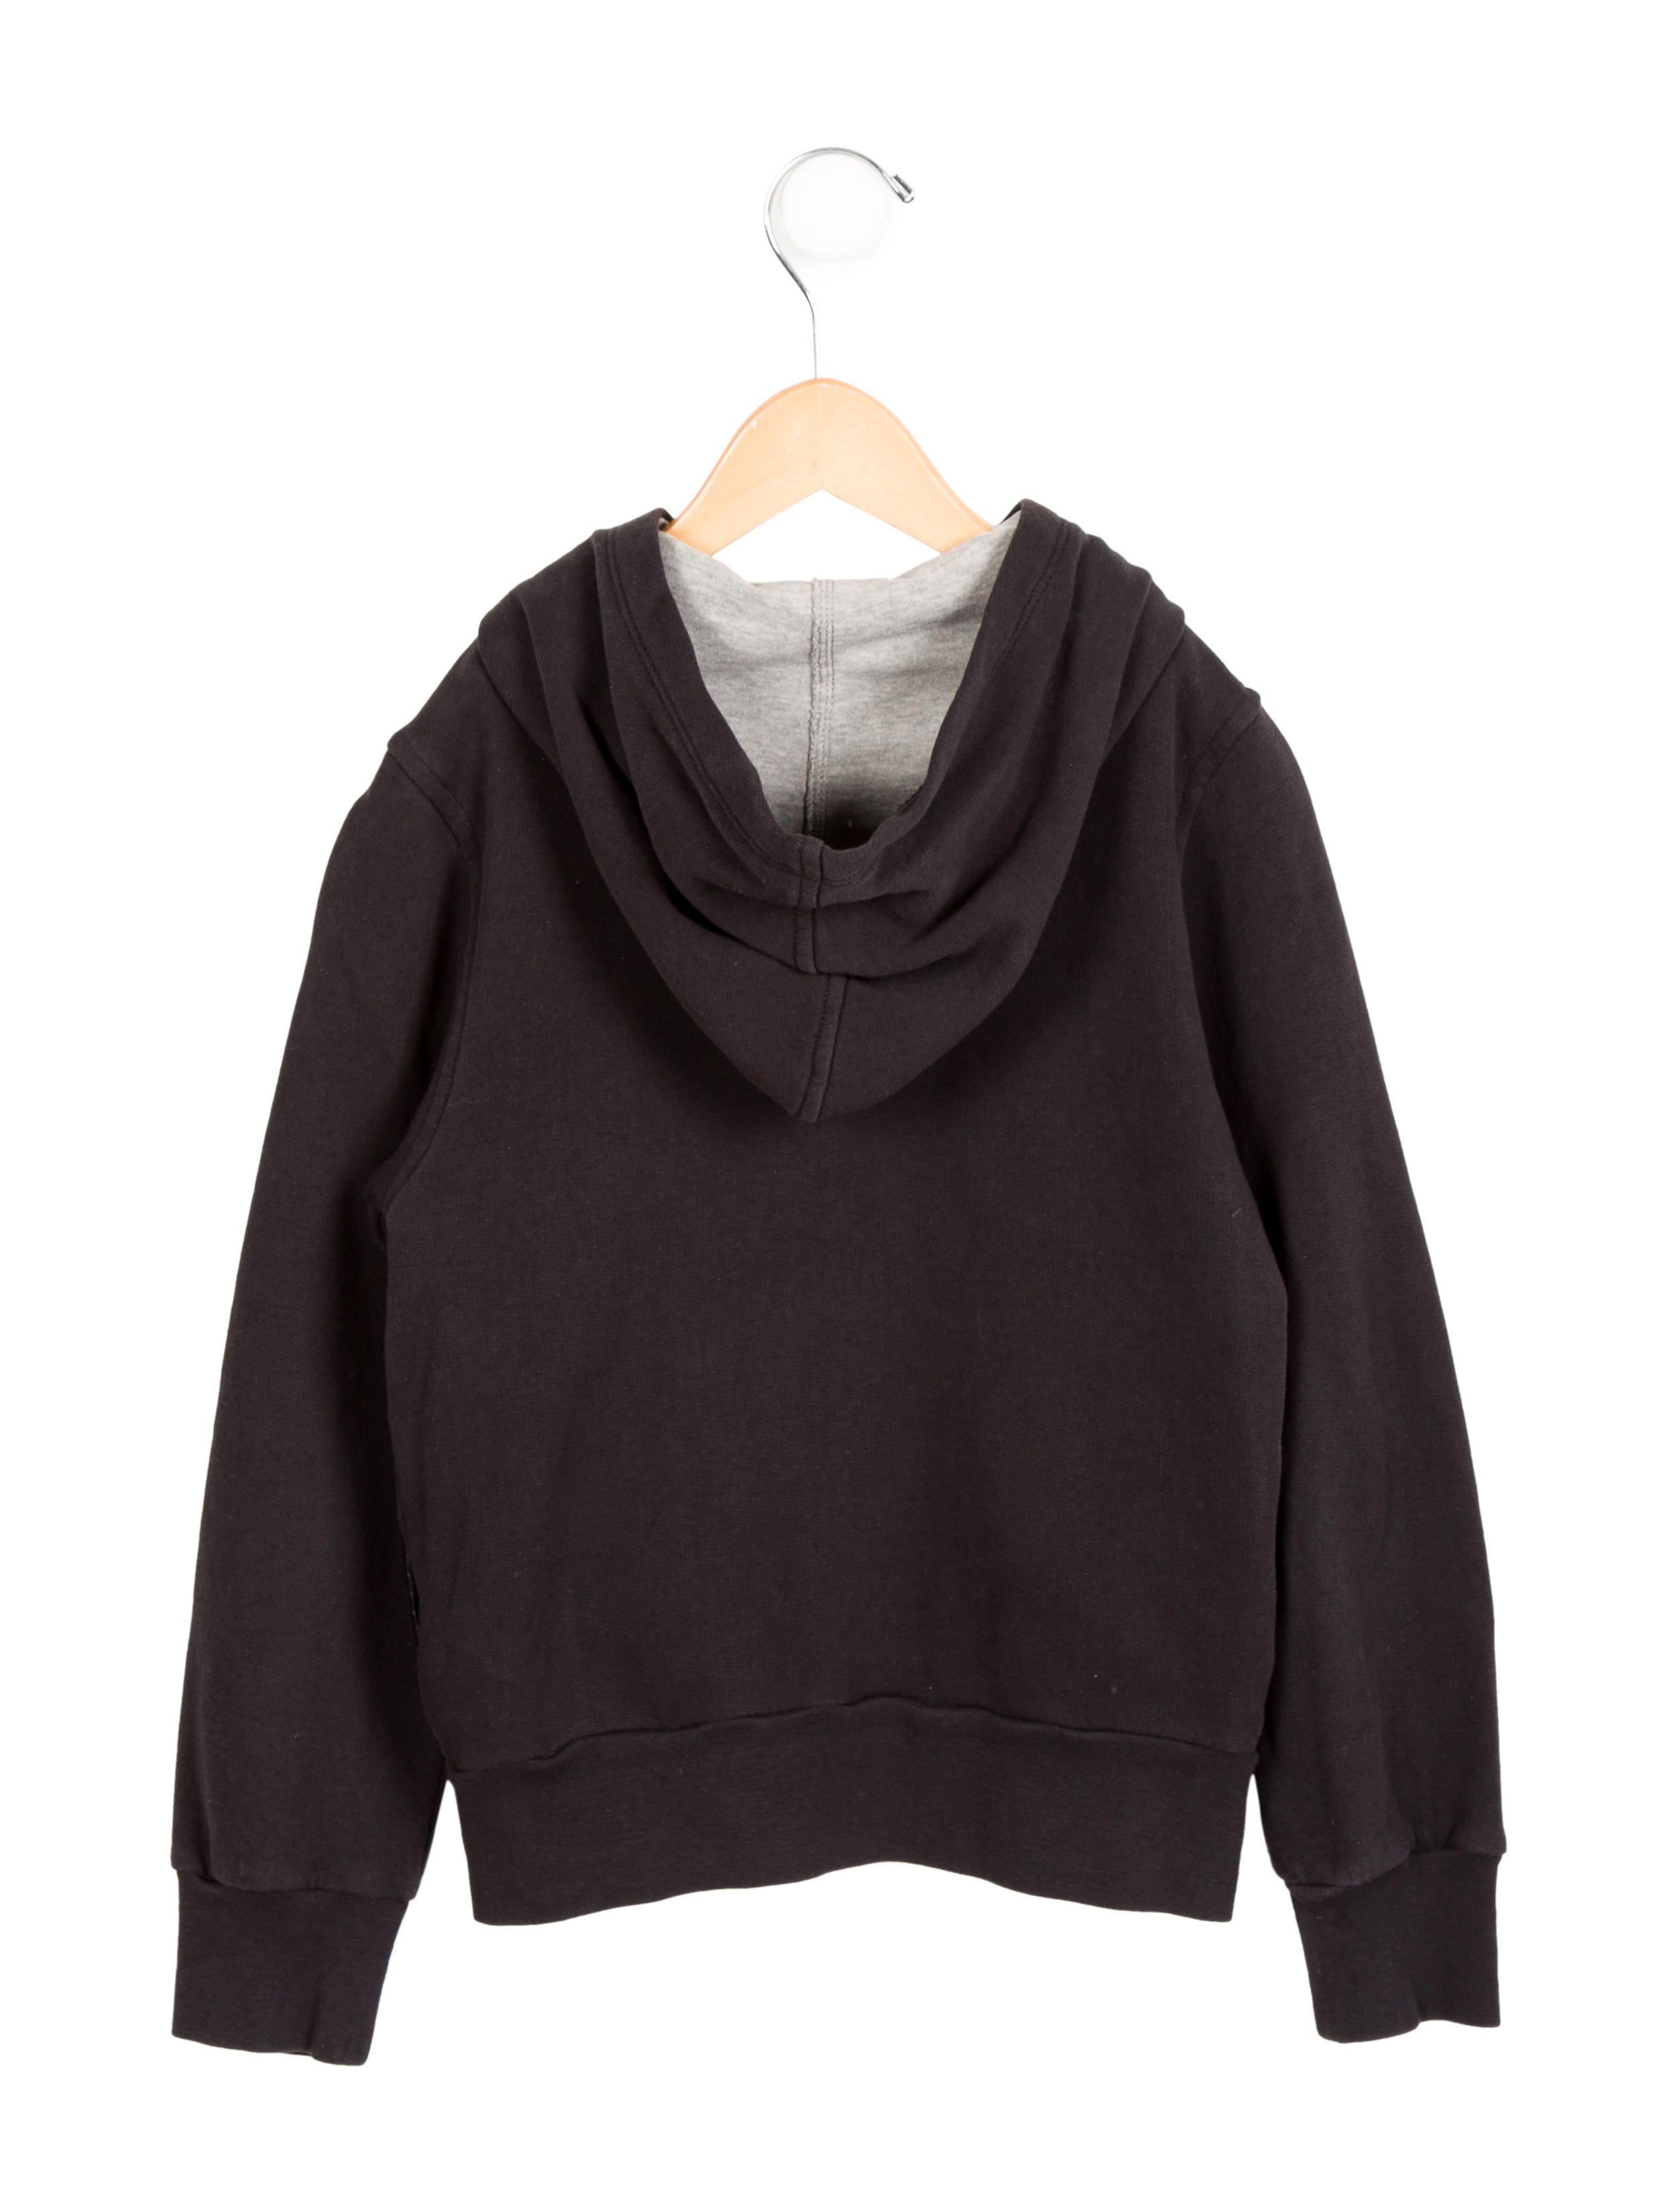 Find great deals on eBay for hooded zip up sweatshirt. Shop with confidence.